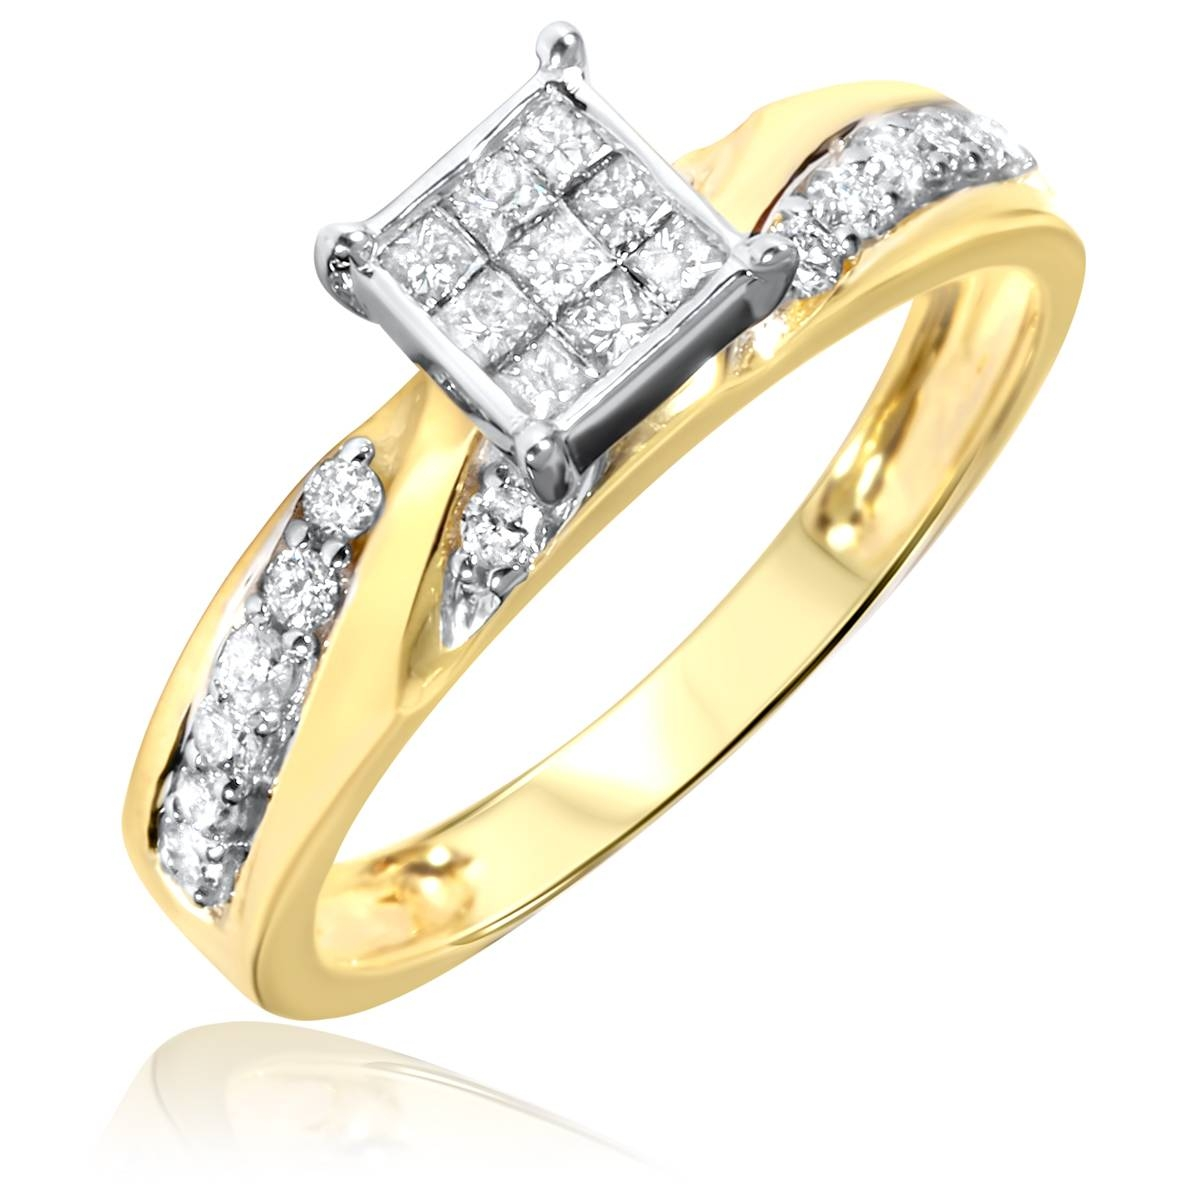 1 Carat Diamond Trio Wedding Ring Set 14K Yellow Gold For Gold Engagement And Wedding Rings (View 1 of 15)